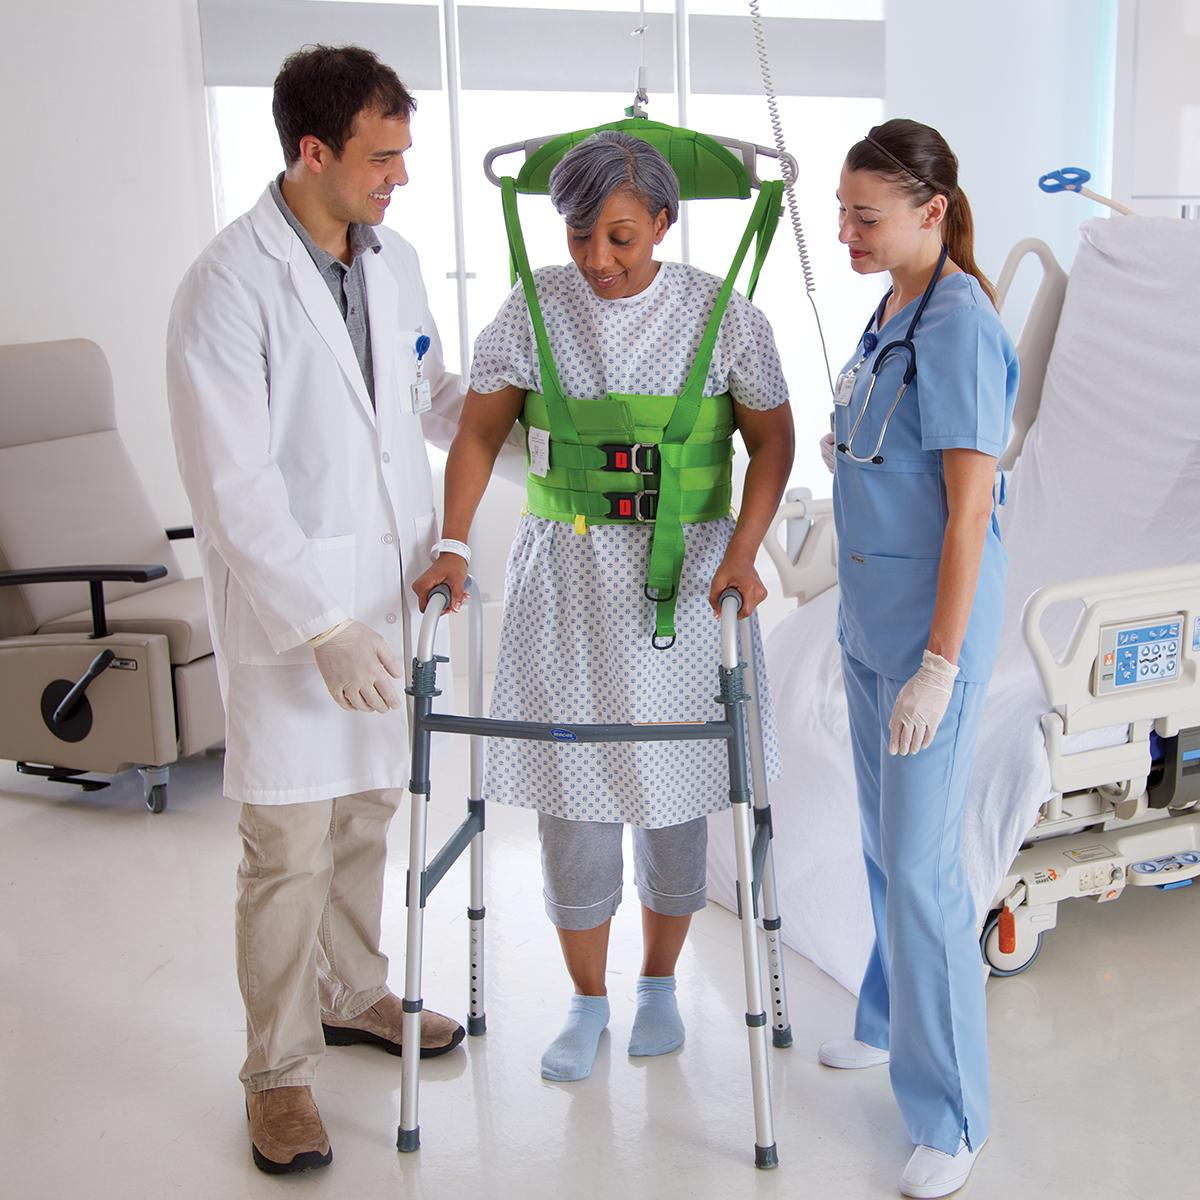 An overhead lift attached to a green vest supports a female patient using a walker, with two clinicians helping